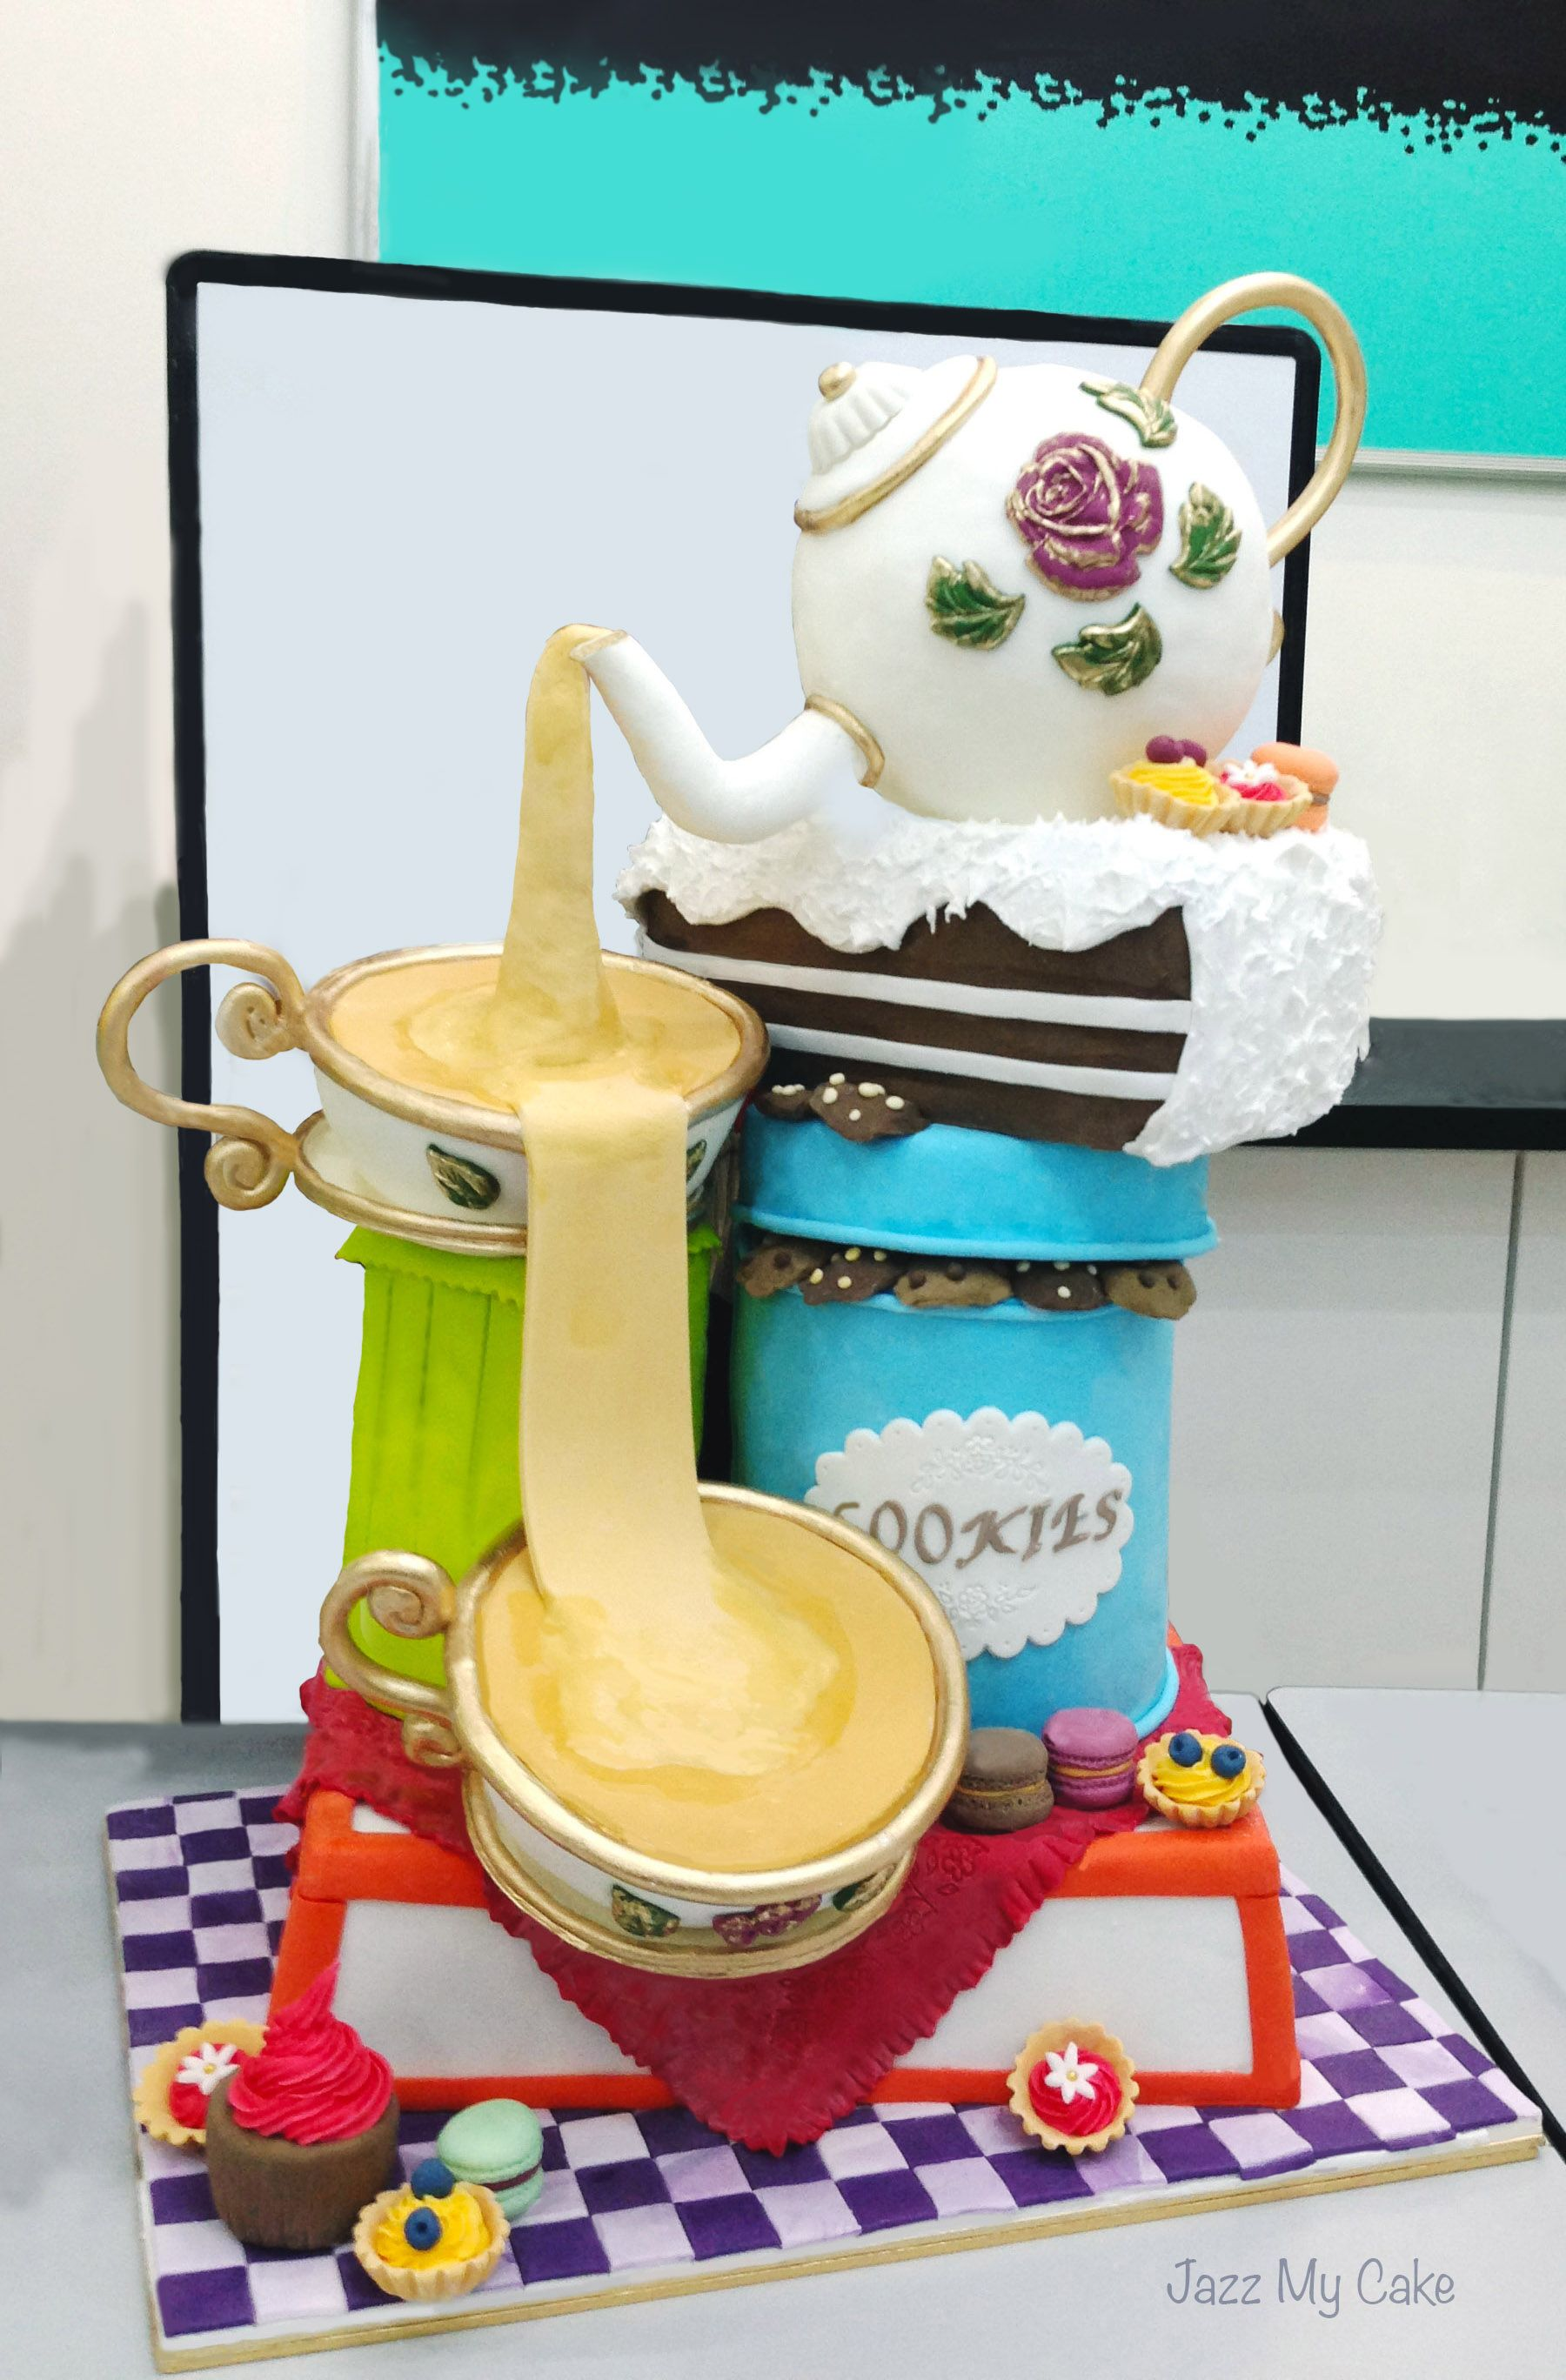 Whimsical Tea Pot Cake Everything Is Edible Made From Chocolate - Amazing edible lego chocolate stuff dreams made